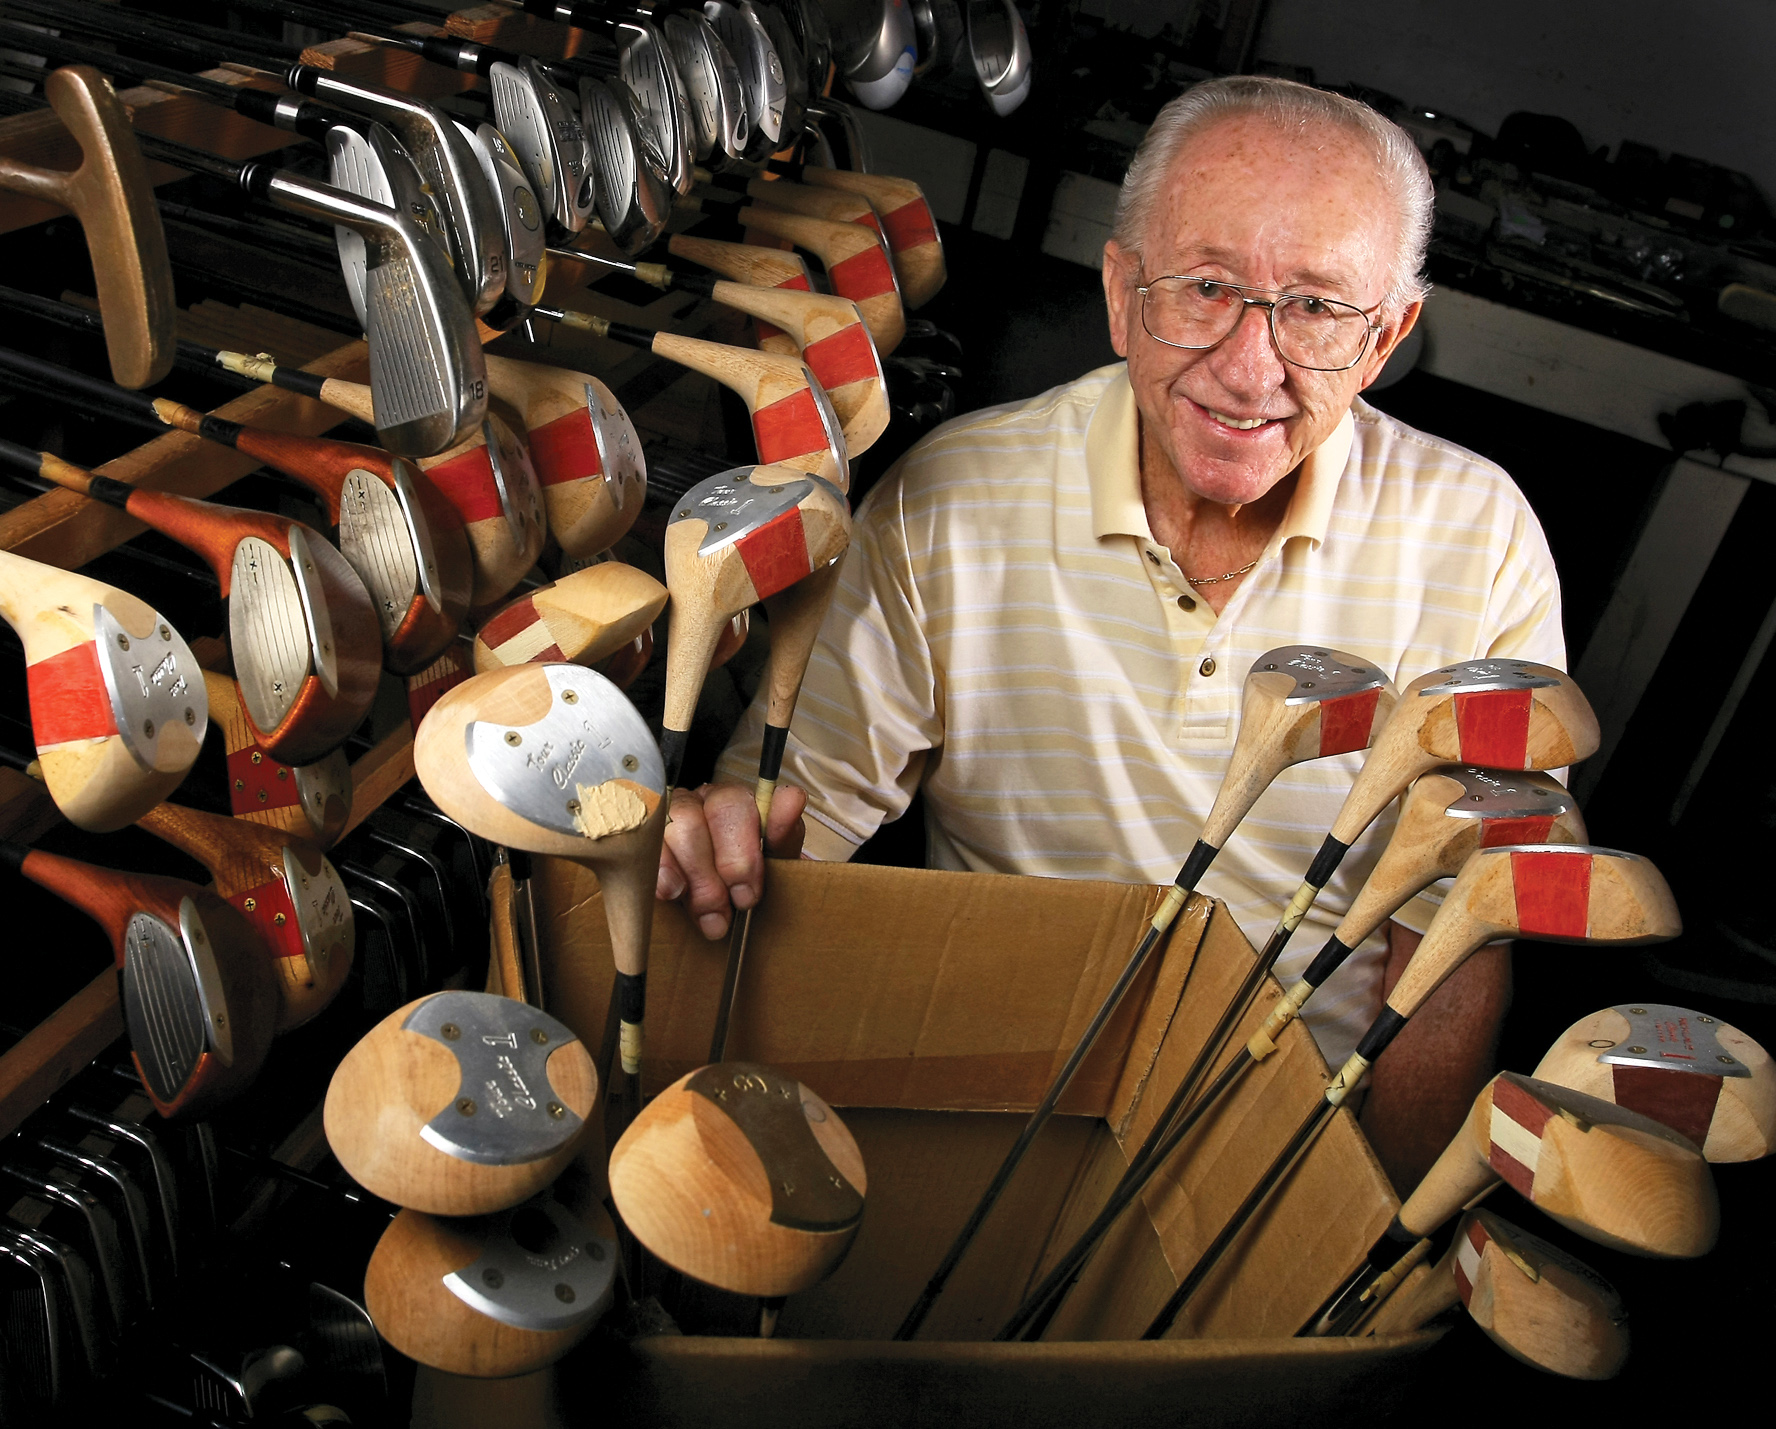 A MacGregor legend, Jack Wullkotte, has served as Jack Nicklaus' personal clubmaker since 1963.